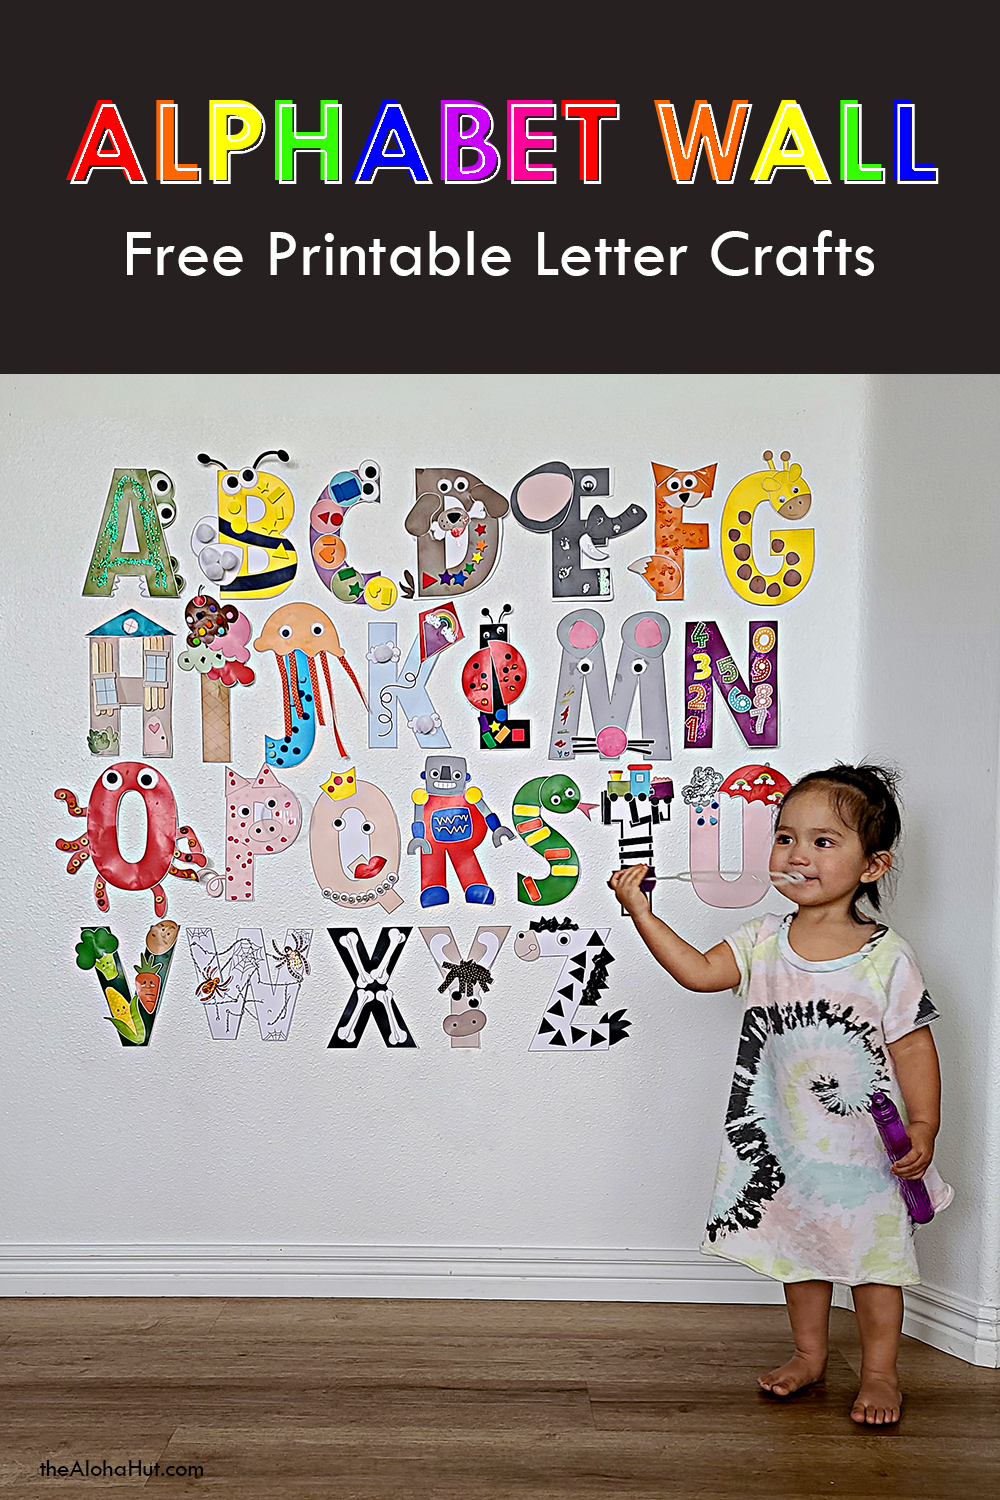 Free Printable Alphabet Letter Crafts 9 by the Aloha Hut